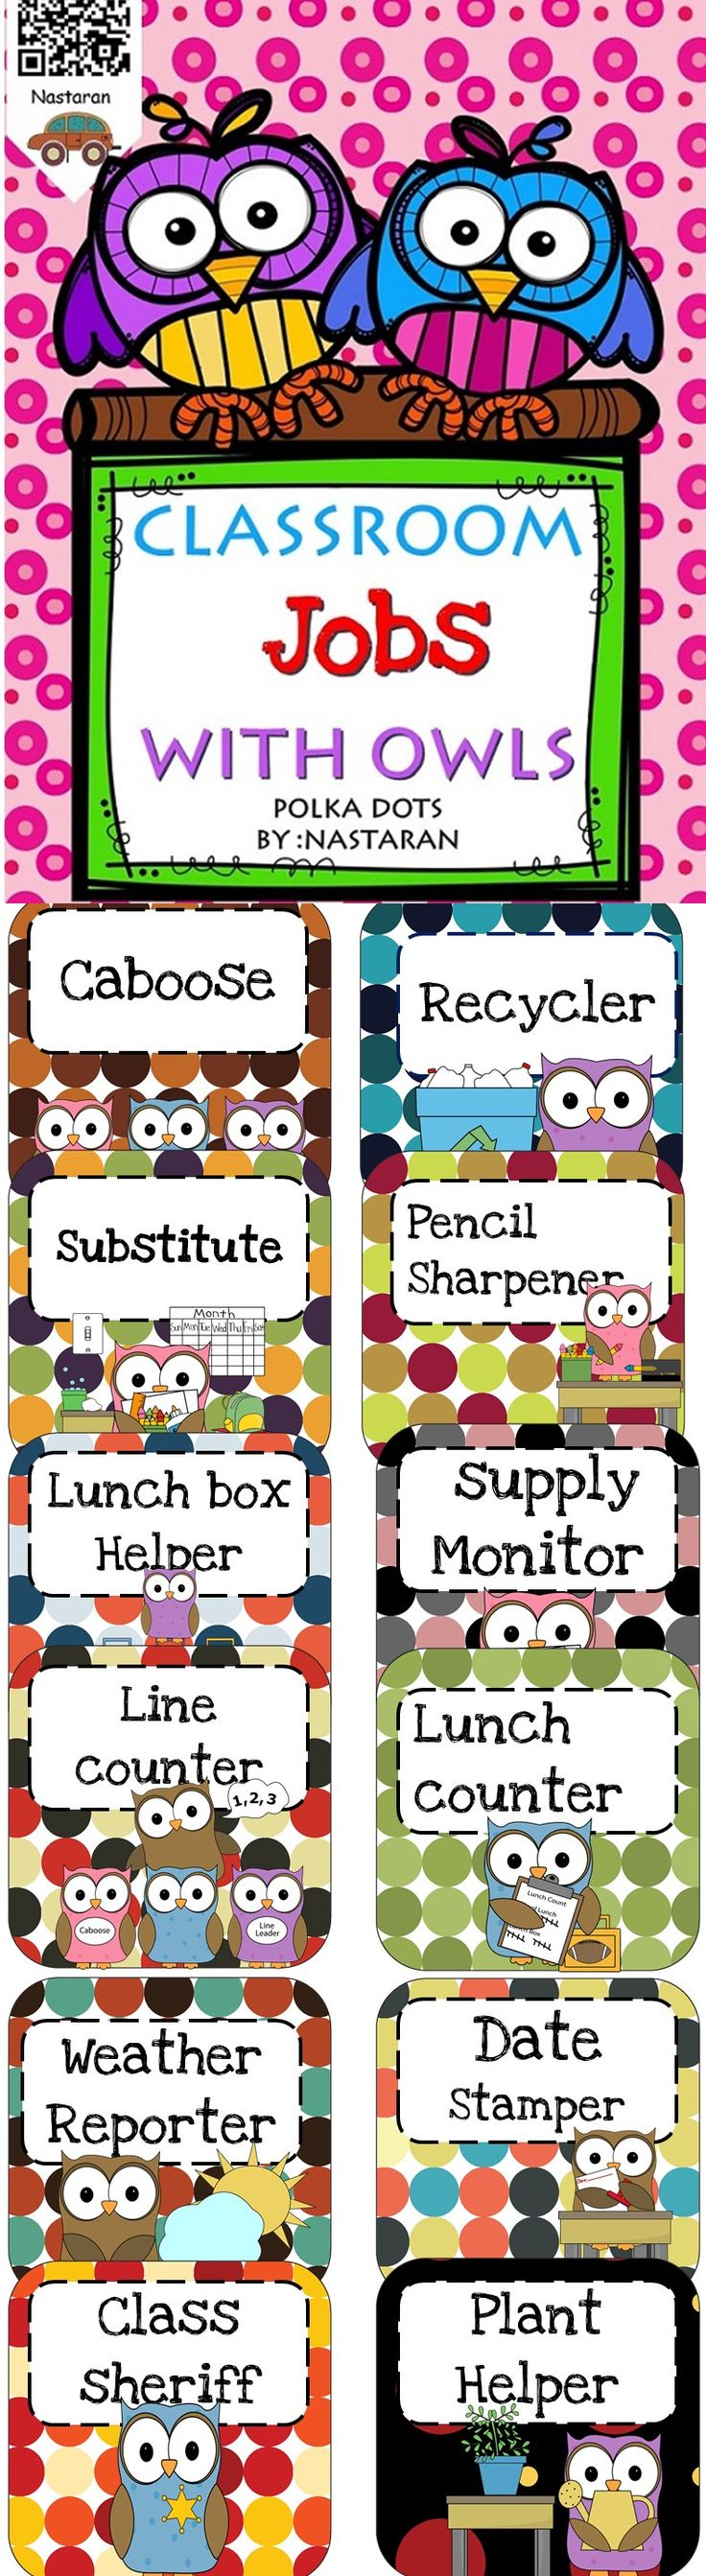 ideas about classroom job application class 5 00 classroom jobs are an easy and fun way to teach students about responsibility this